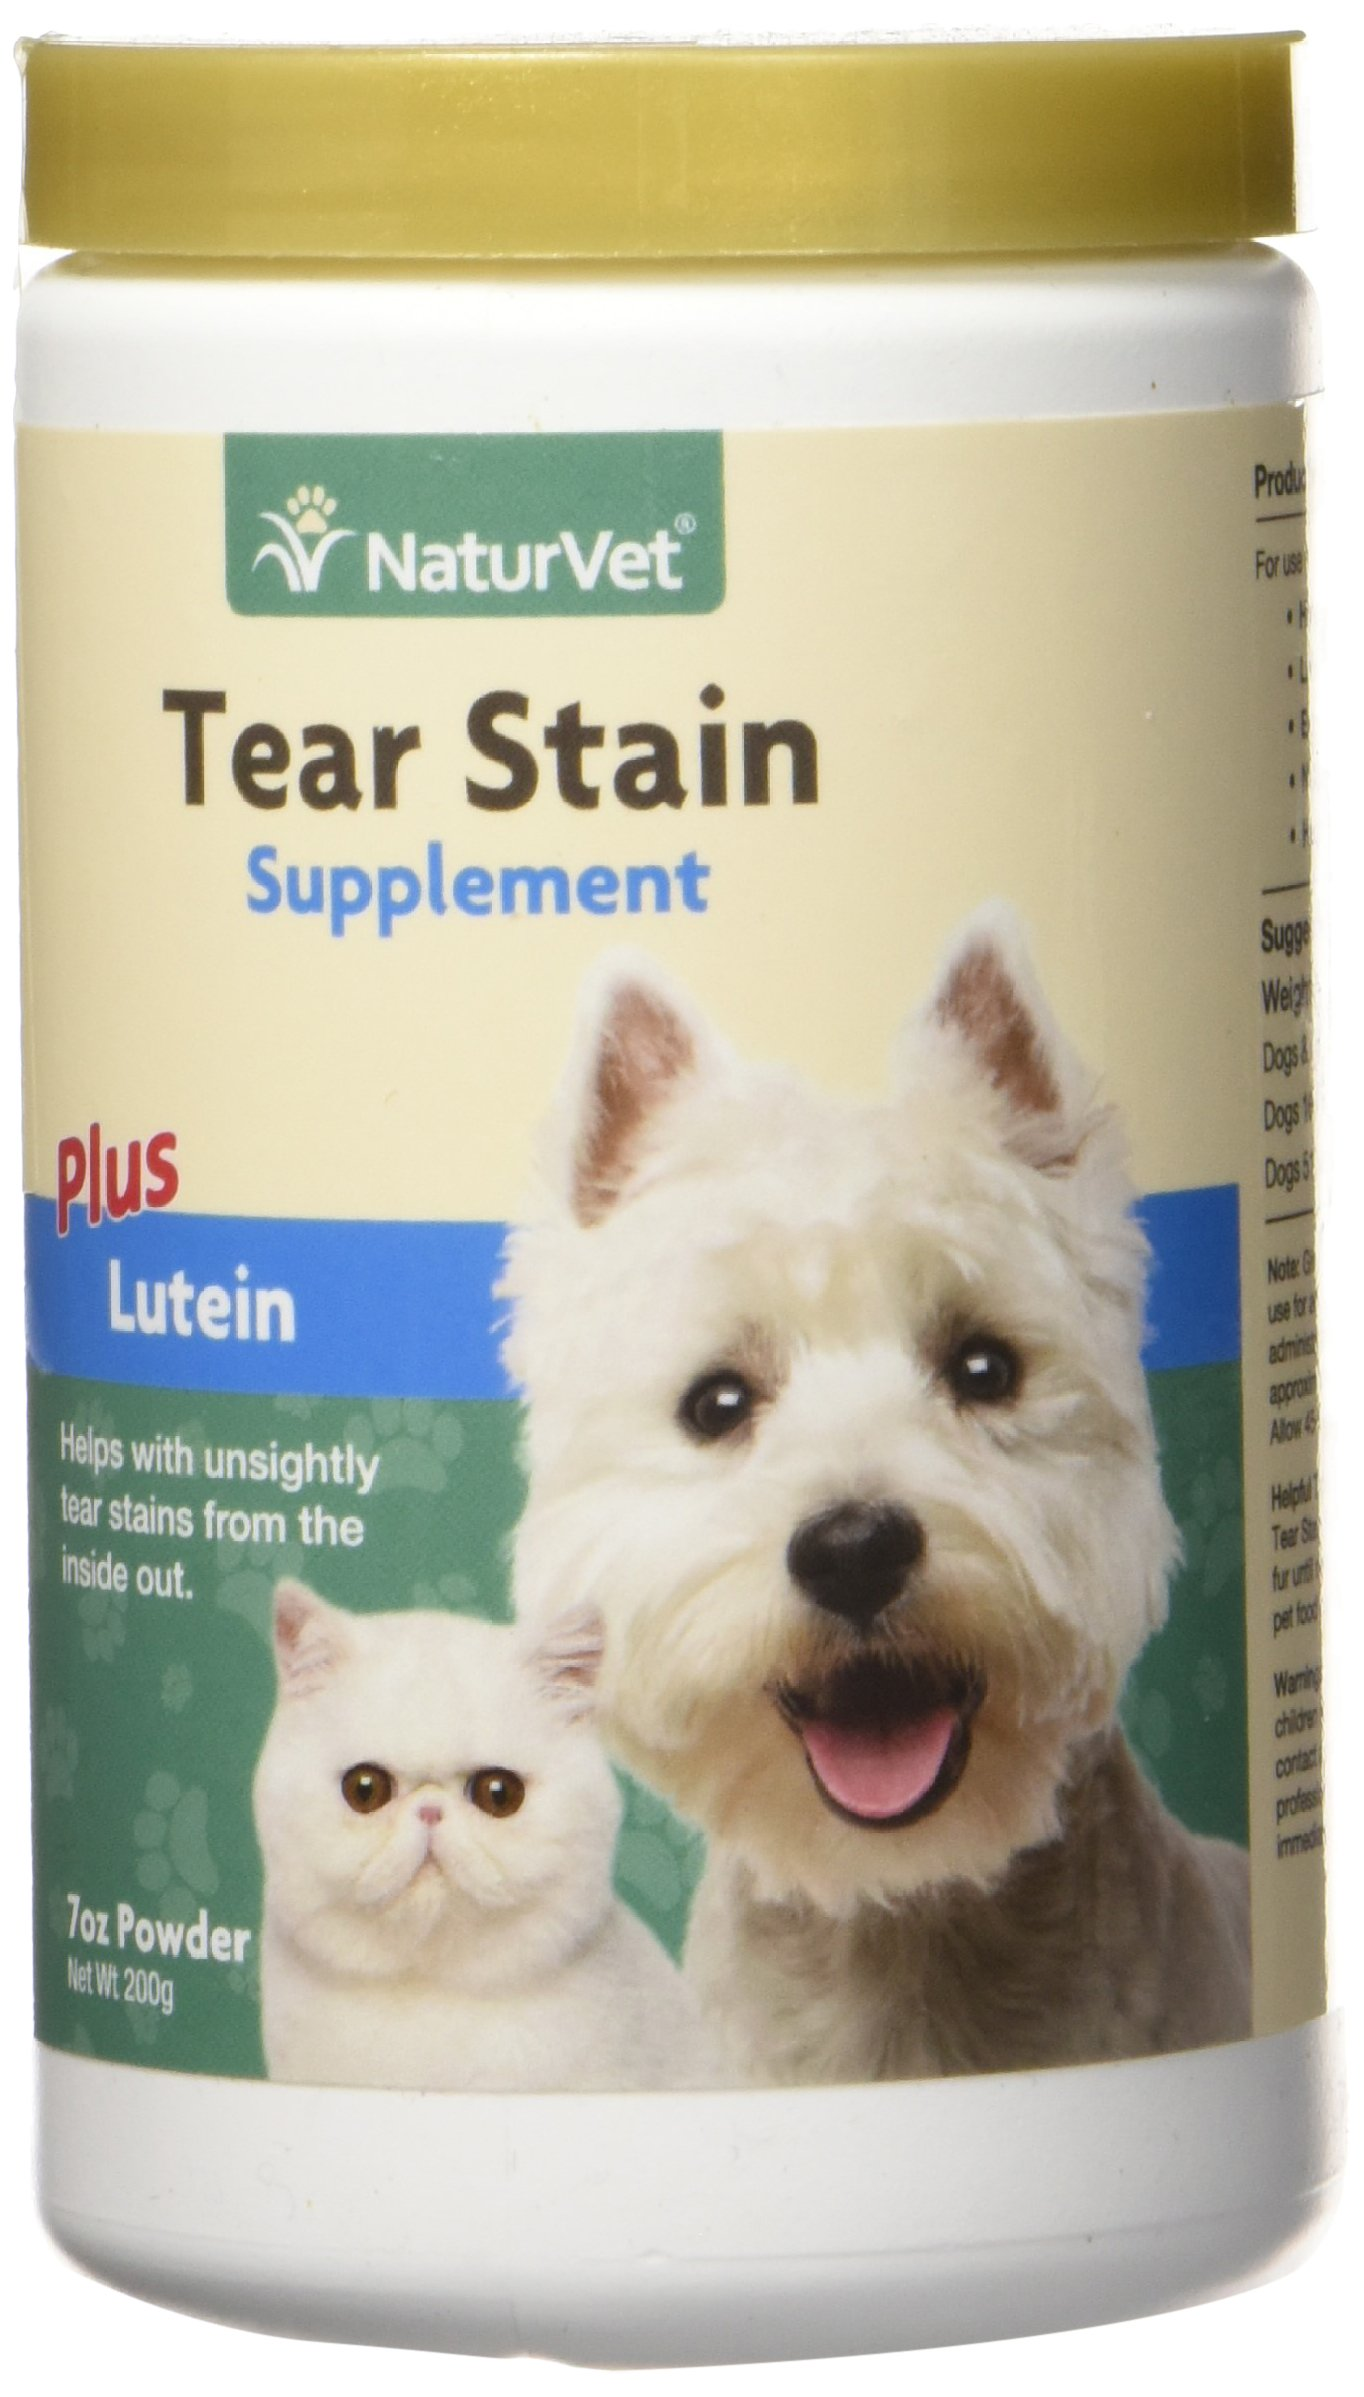 NATURVET 978233 Tear Stain Supplement 200G for Pets